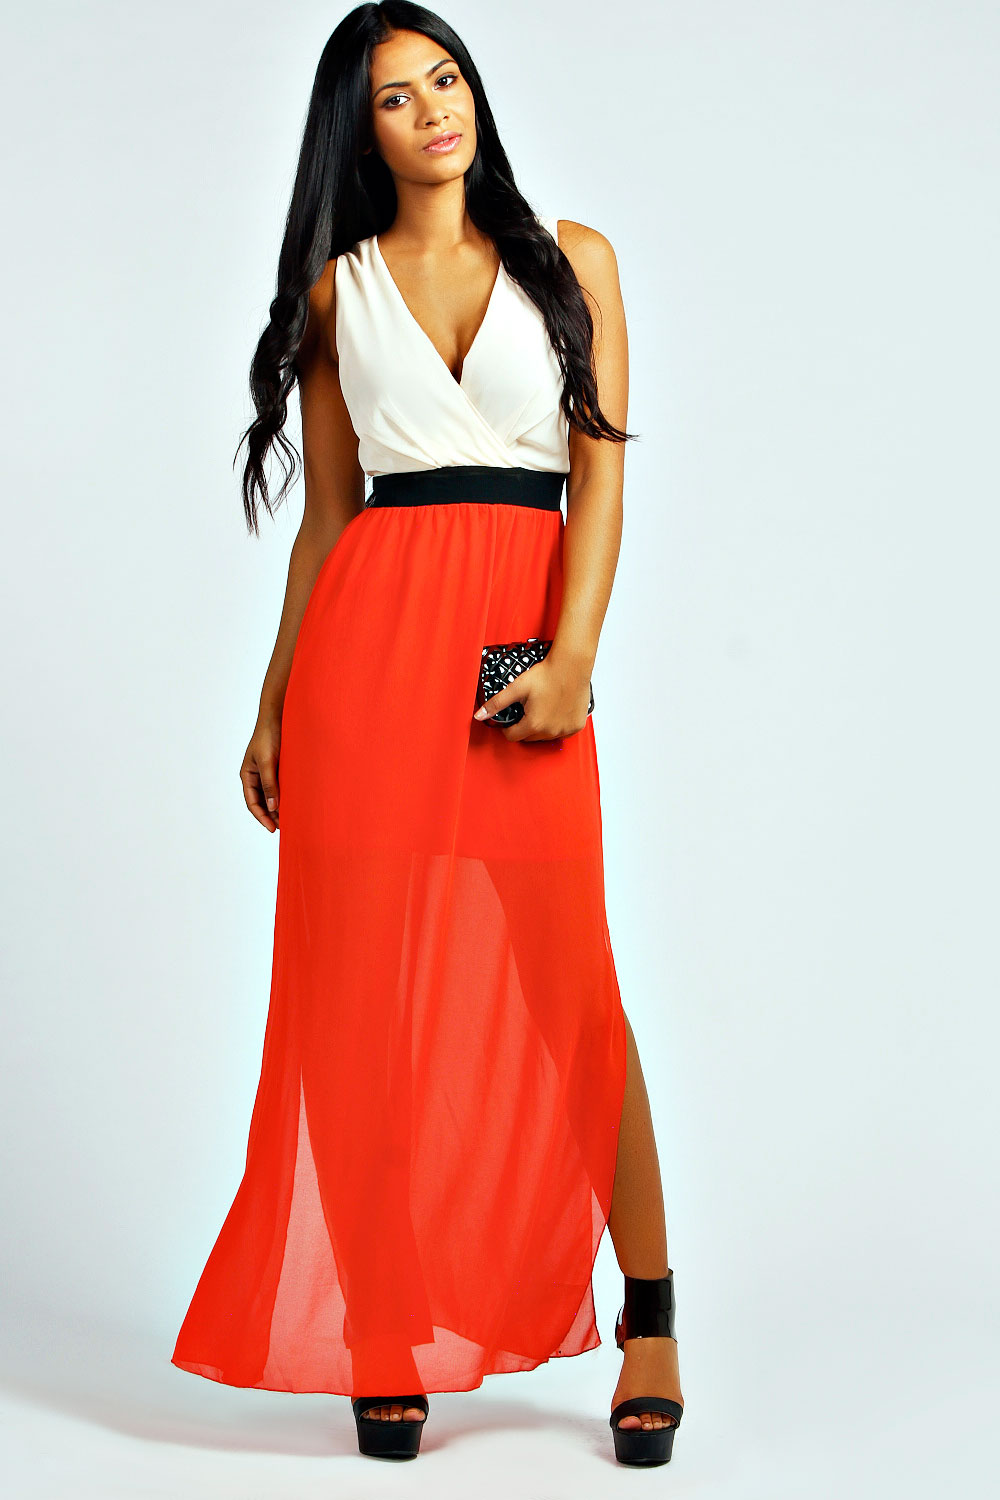 Boohoo Alesha Colour Block Maxi Dress, $50 at  Boohoo.com .